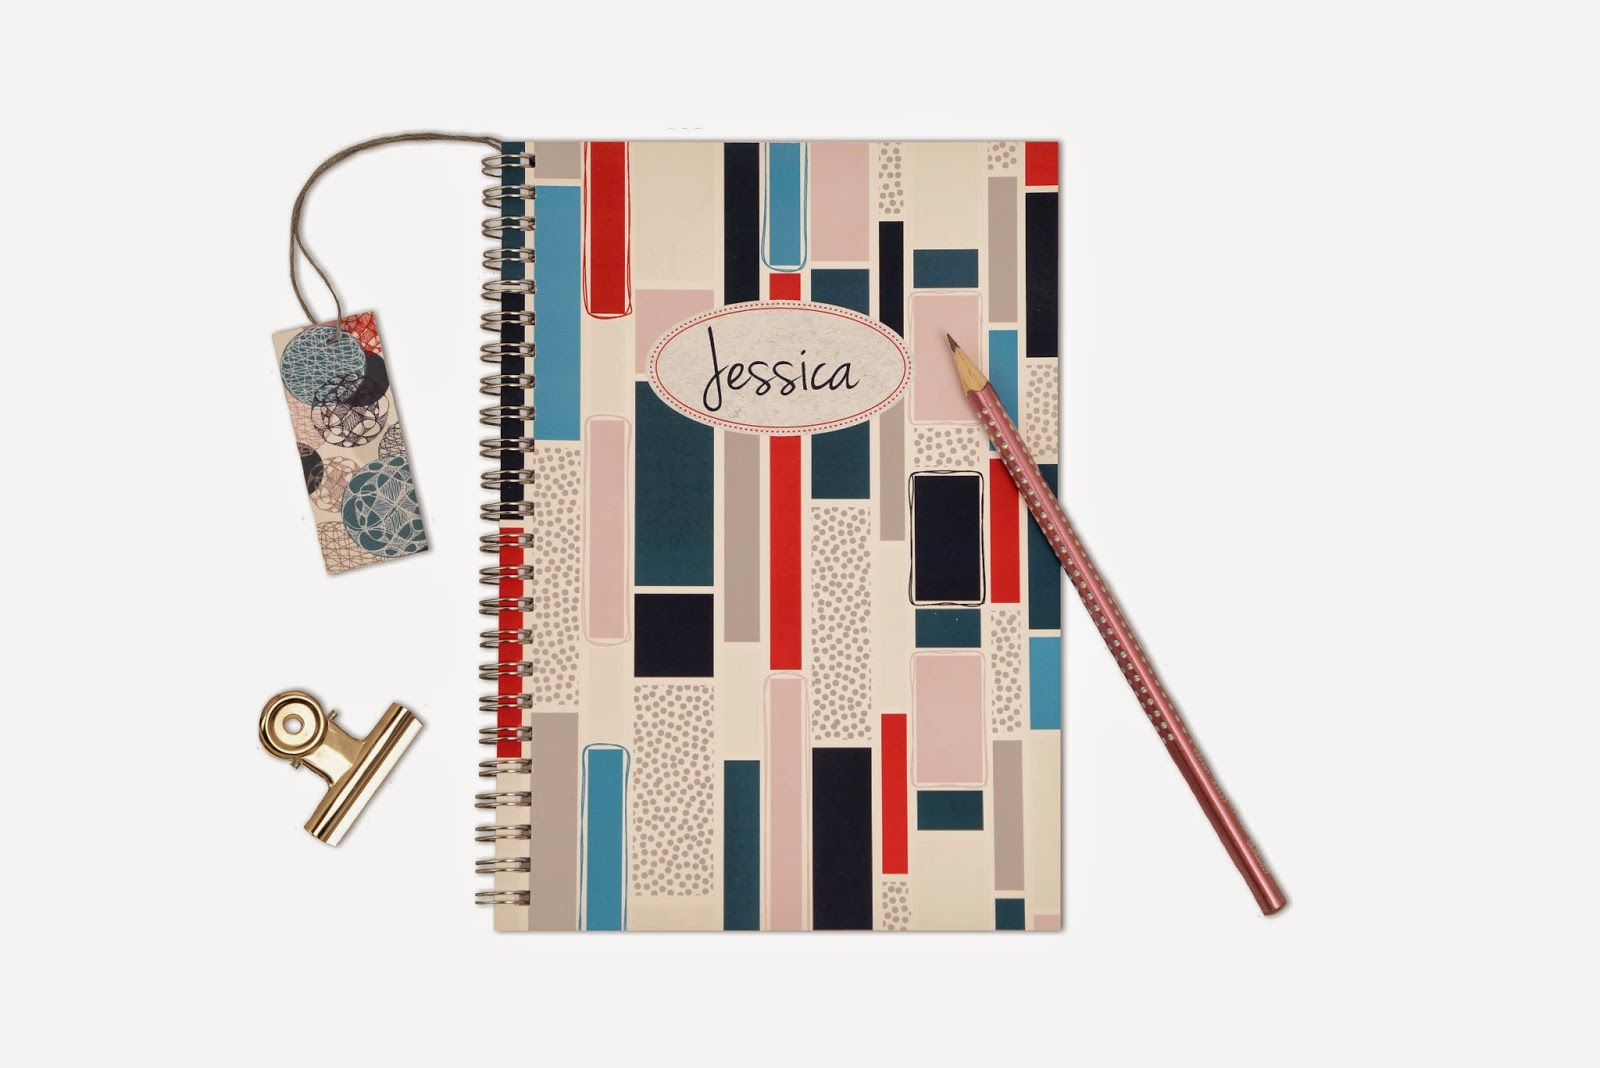 copyright©Pattern Jots by Maike Thoma 2015